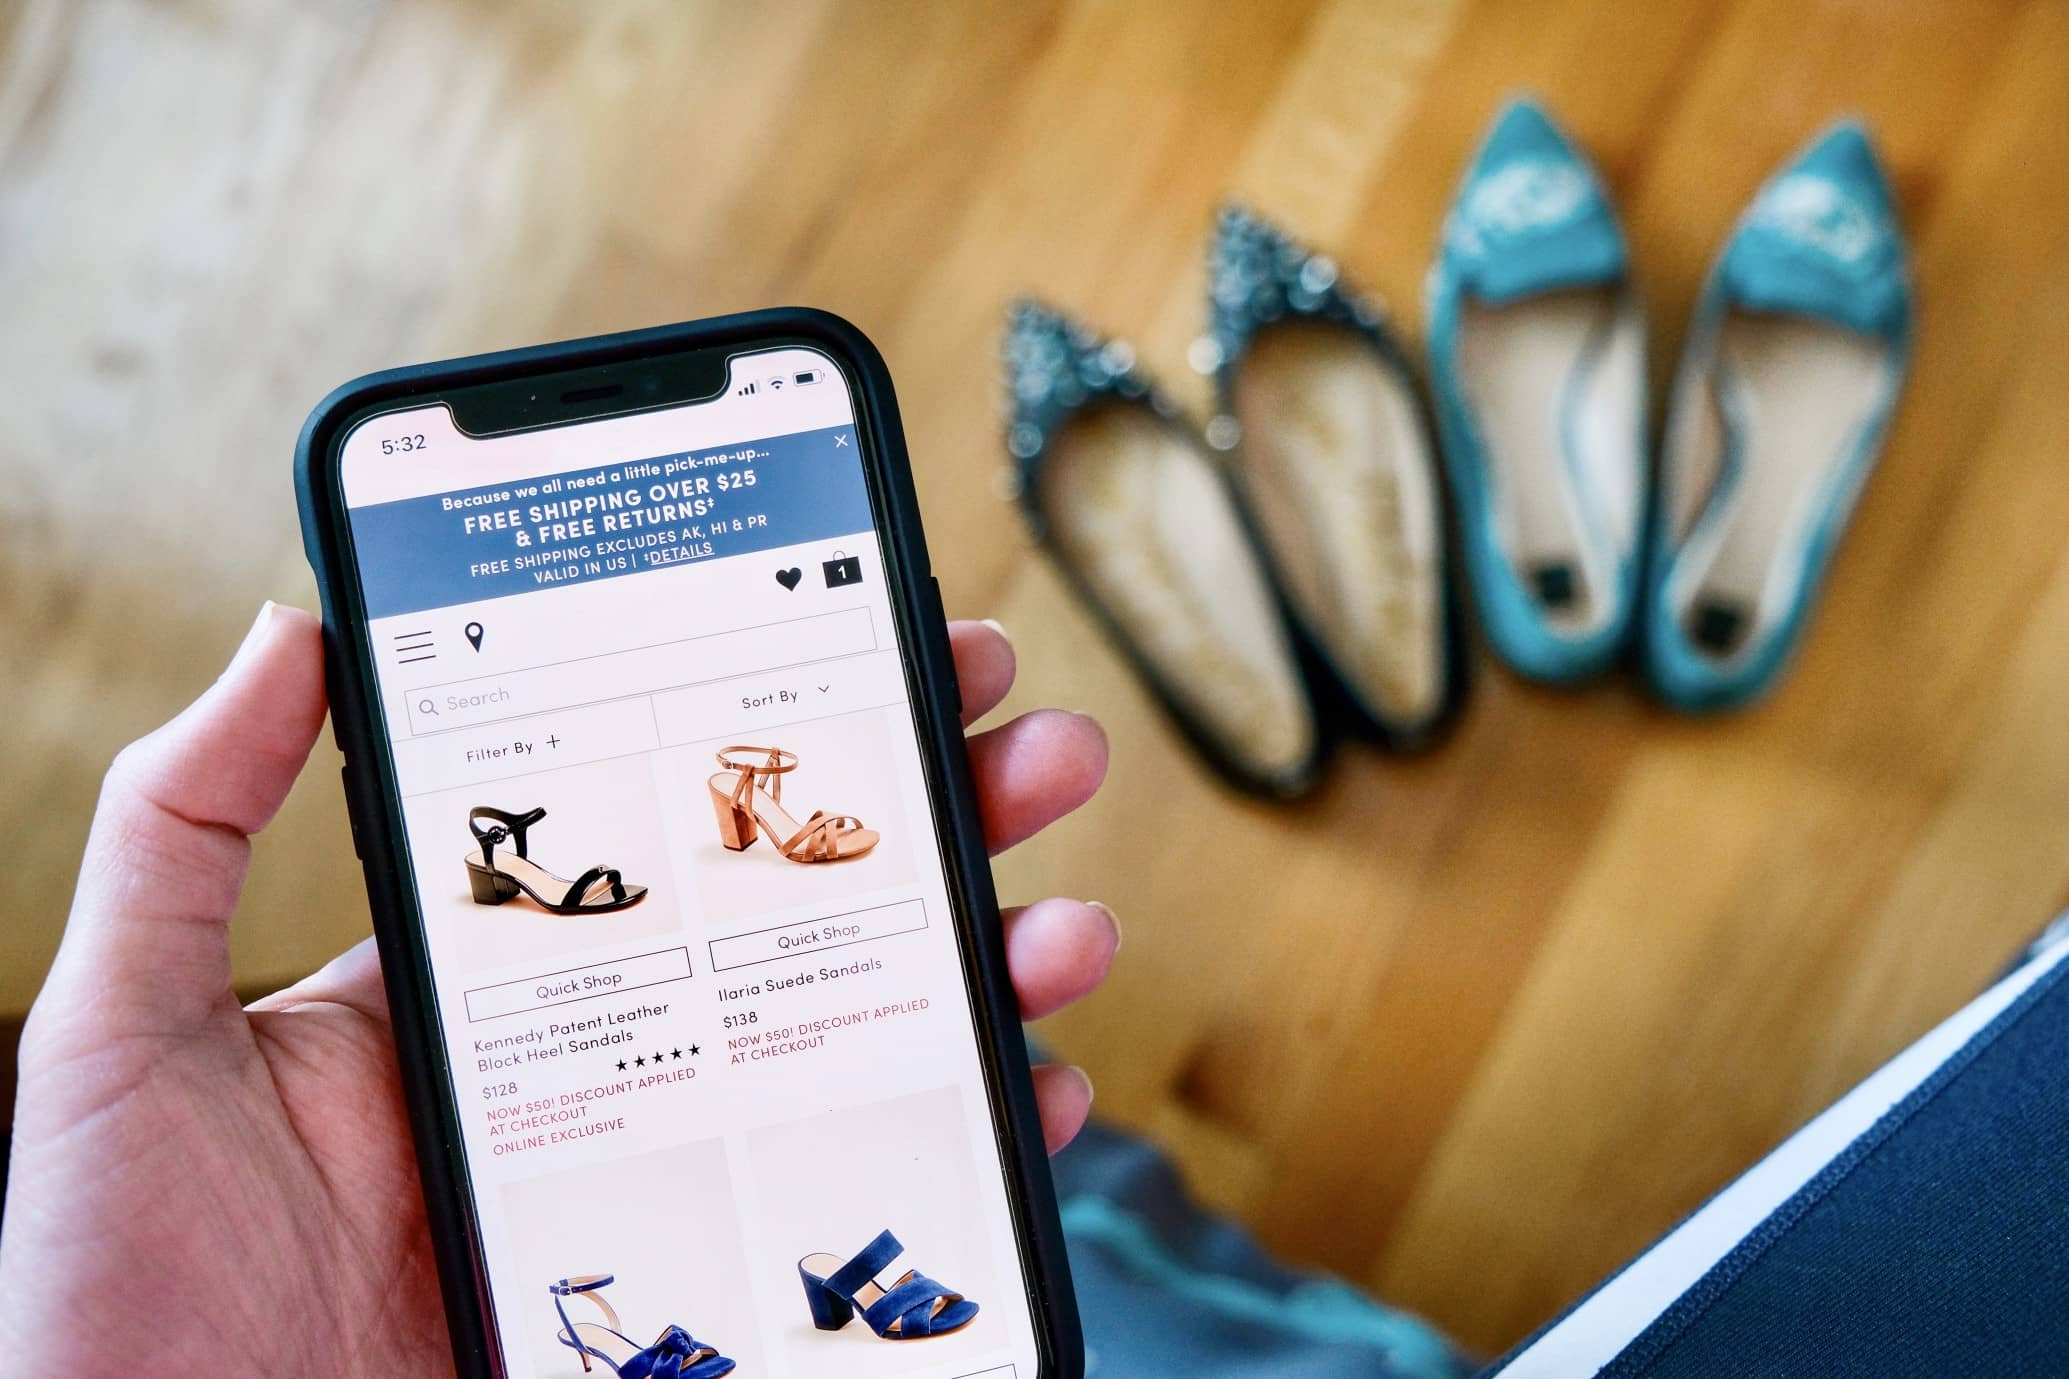 Comment booster son ecommerce